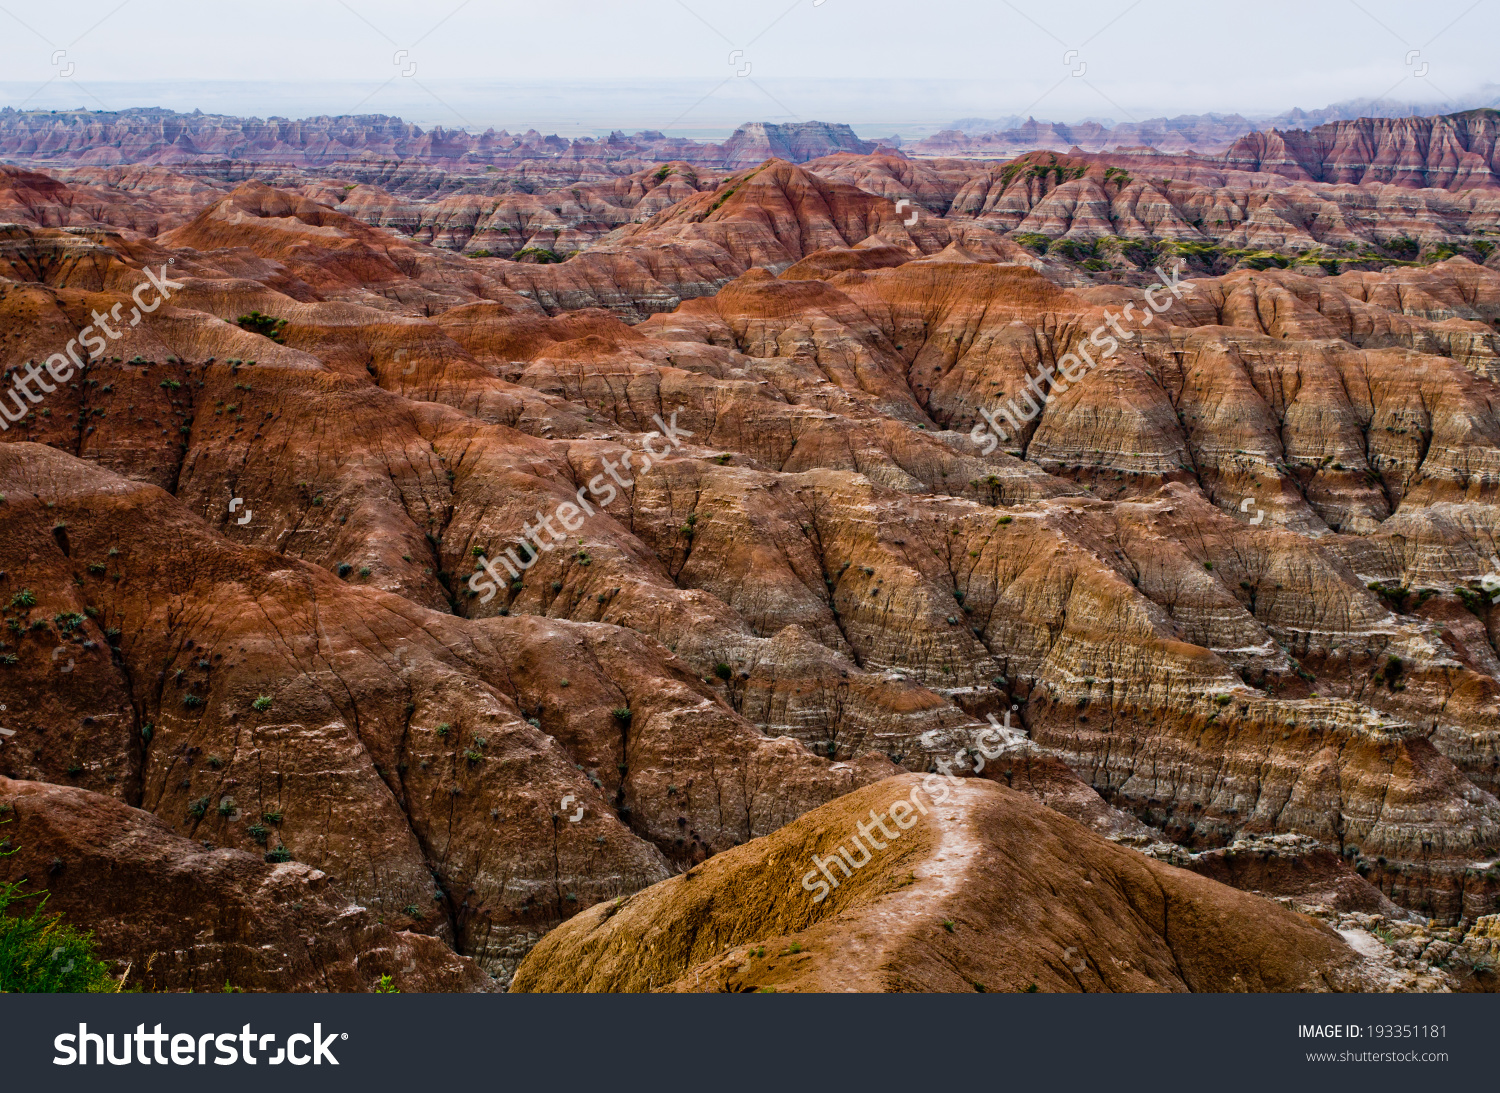 Dawn Pinnacle Overlook Badlands National Park Stock Photo.